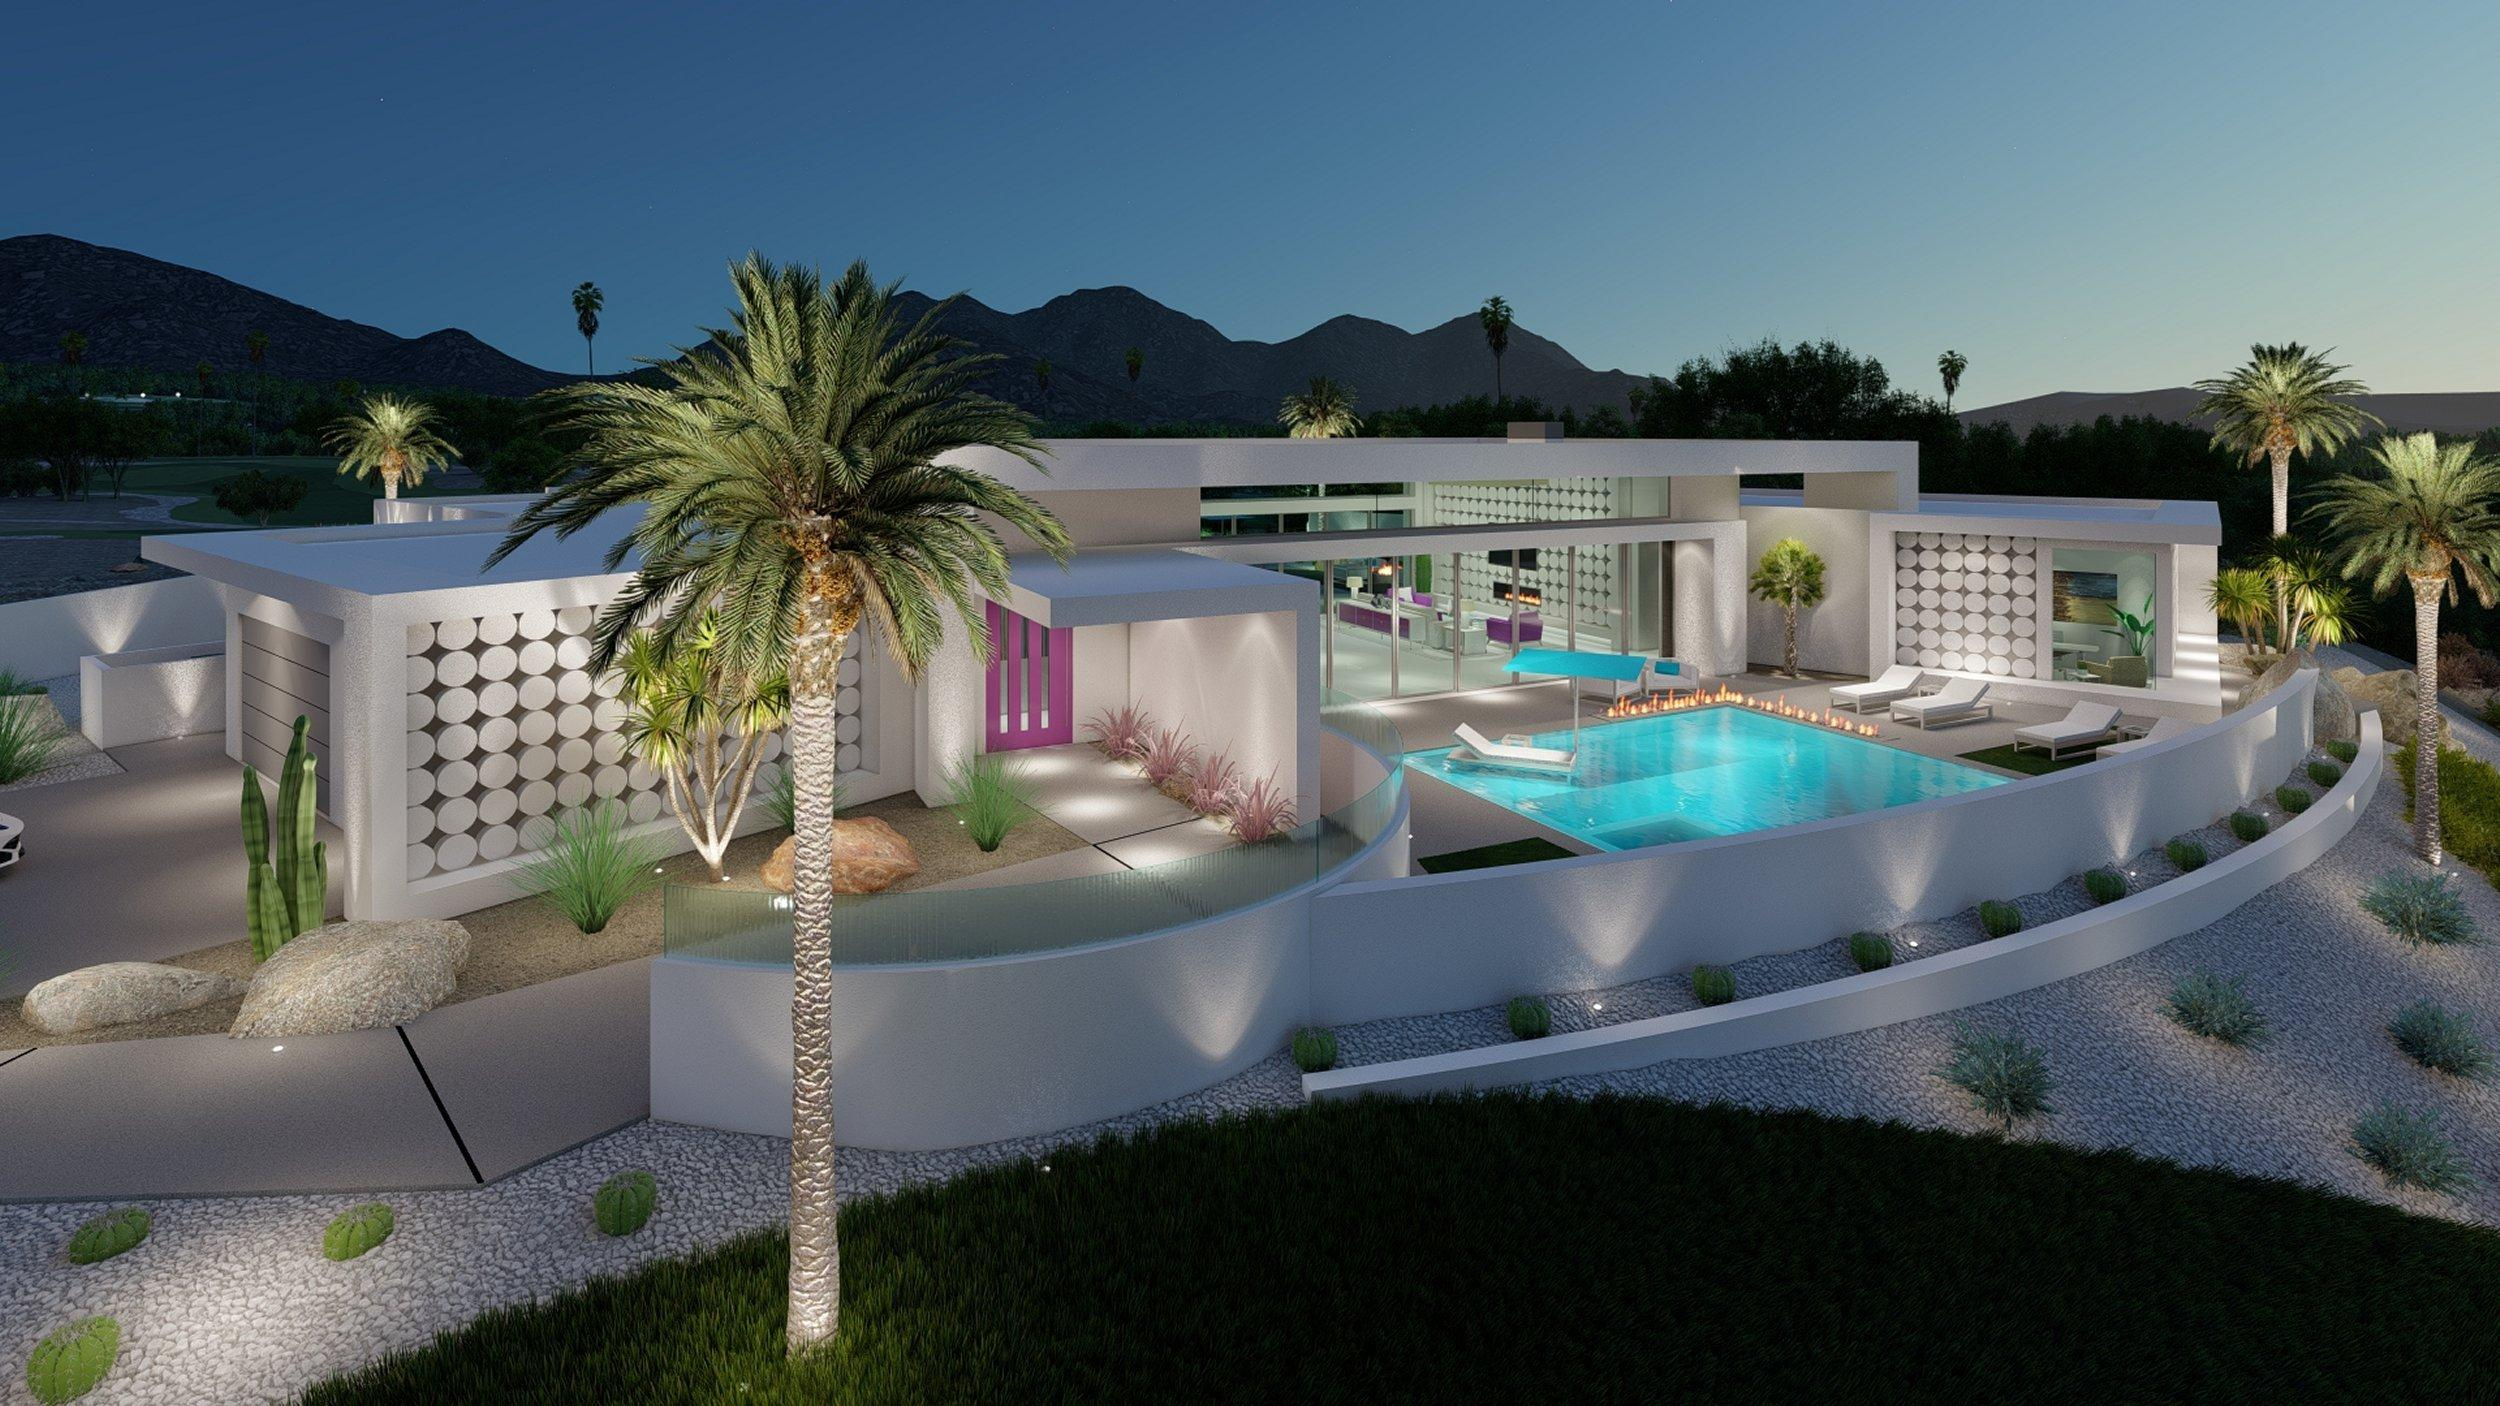 PRE CONSTRUCTION Offering - Custom, contemporary desert residence located in the highly sought after ''The Quarry'' in La Quinta, a Guard Gated Tom Fazio Designed Golf Club, tucked in a scenic cove between the foothills of the Coral and Santa Rosa Mountains. The unique property is perfectly positioned to capture panoramic views from the front and back of the house.  While the design maximizes the unobstructed commanding views, it takes into consideration the utmost importance of privacy. Situated on a king size lot, of more than 28,000 square feet, with sprawling outdoor spaces and the views of the golf course are arguably the best within the club. Delivering the perfect balance of form and function, the approximately 4,300 square foot home offers 4 bedrooms, 4.5 baths, a study, media room and a 3-car garage. The striking design showcases dual expansive walls of sliding glass doors, clerestory windows, an outdoor ZEN Lounge area off the master bath, outdoor kitchen & bar, two pools and two spas all designed to enhance the Southern California Desert Lifestyle. There's also outdoor fire features, a BBQ area, lighting effects and fine quality finishes throughout. The Quarry is an incredible enclave with unmatched exclusivity, serene views, top rated security and patrol.  Also ranked in Golf Digest's Top 100 Golf Courses. Ranked #5 in Overall Conditioning in the US. An opportunity of this caliber Rarely Becomes Available!